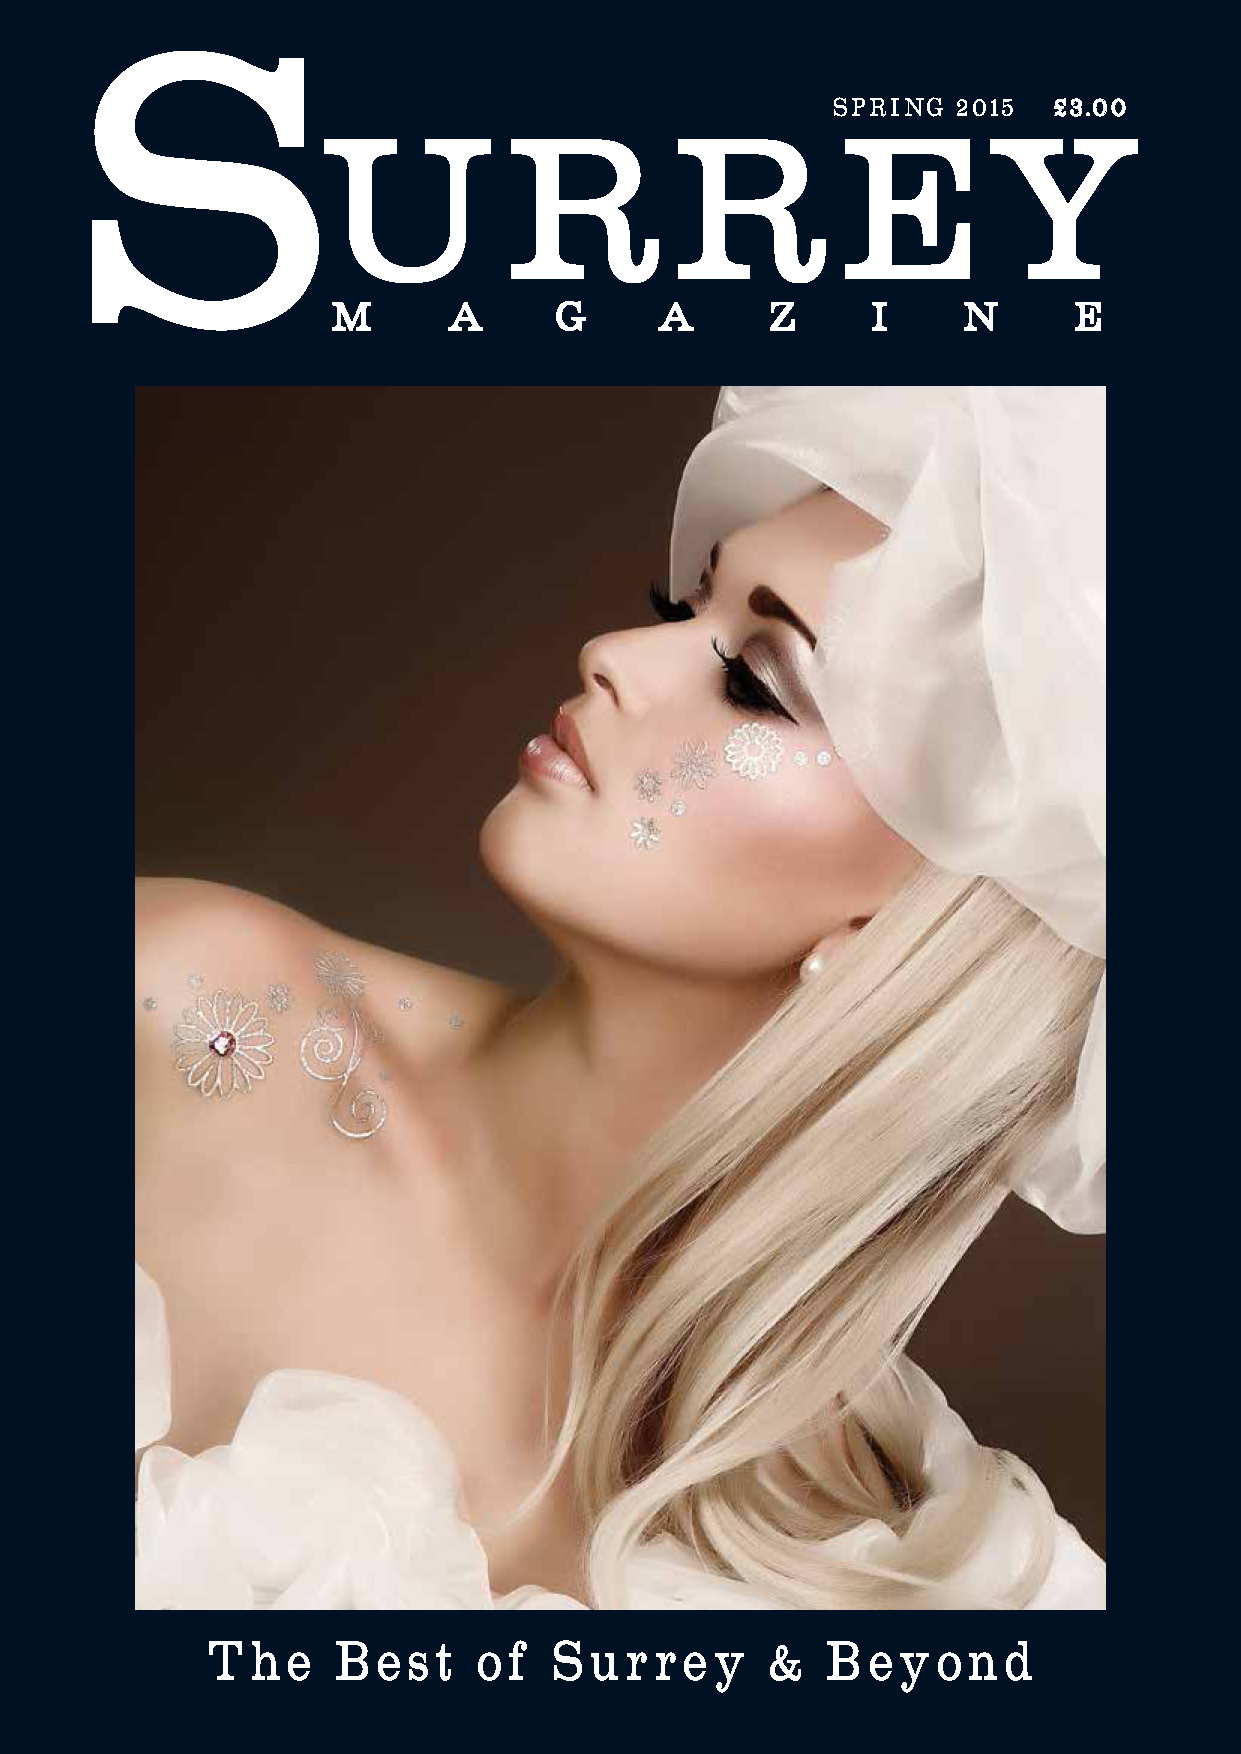 Surrey Magazine Spring 2015 edition